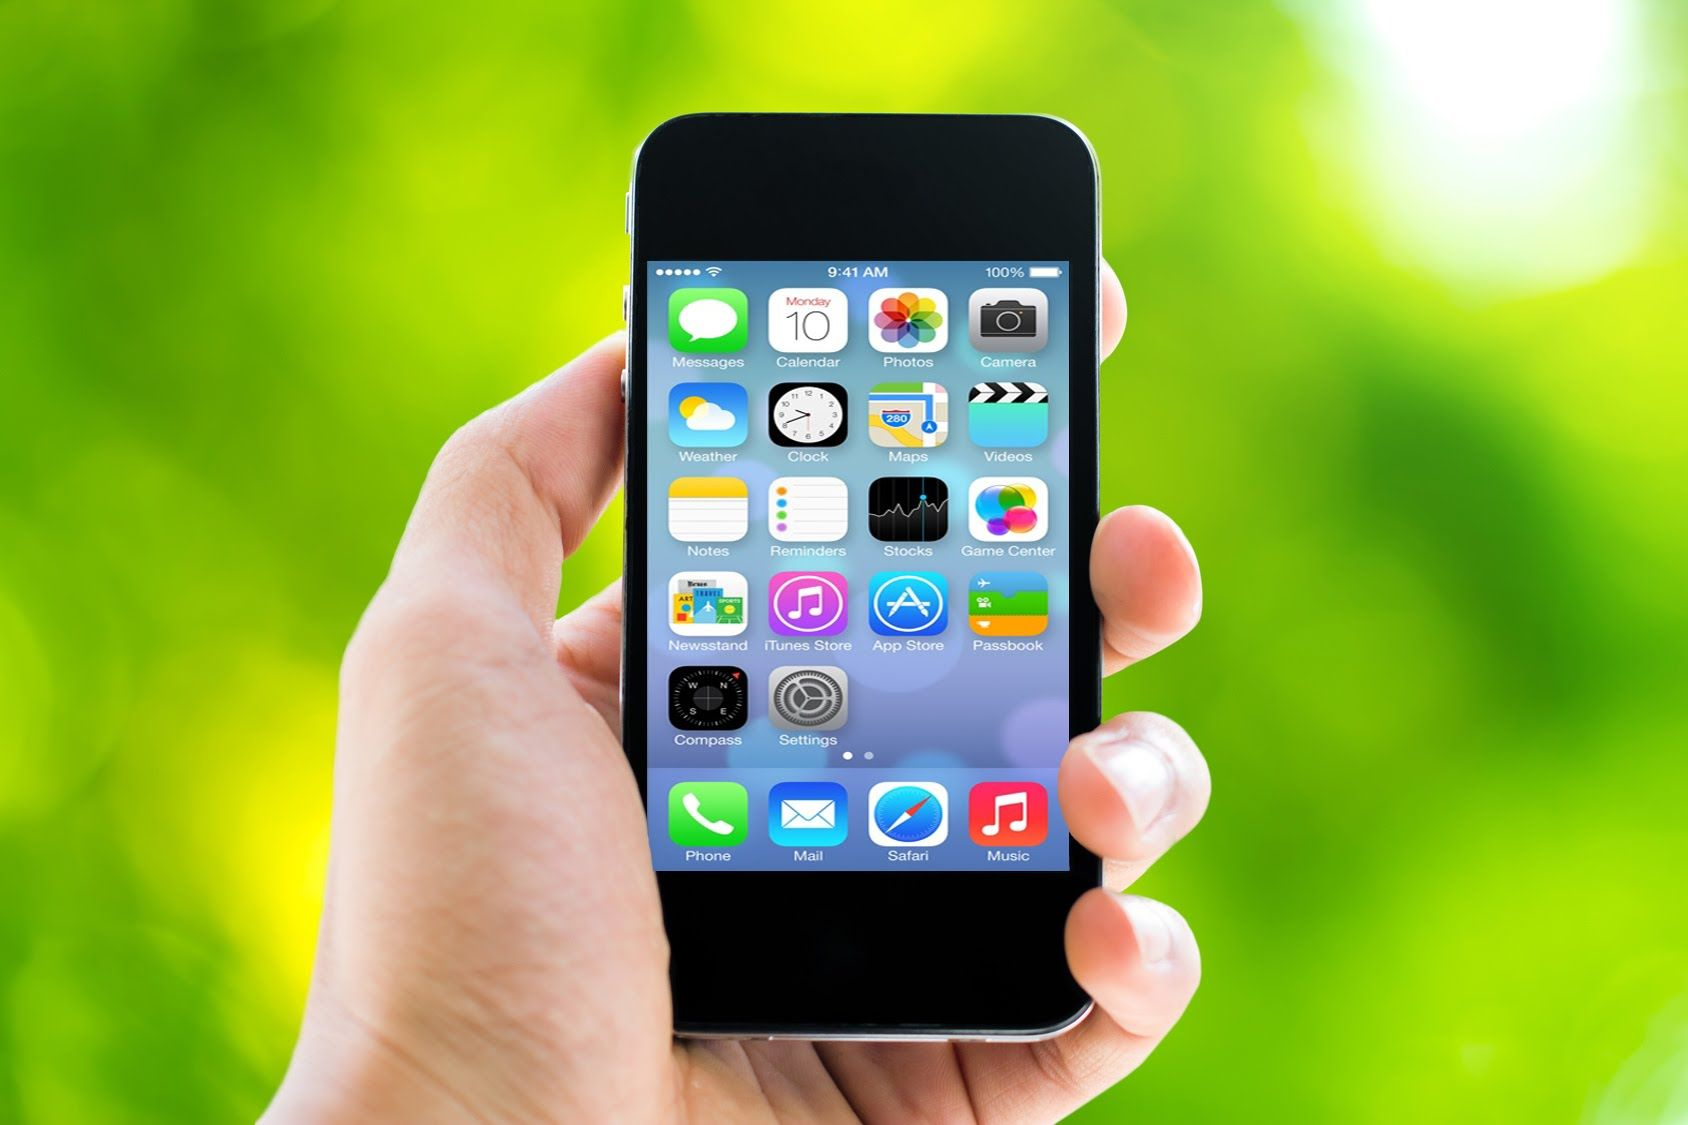 How to unlock an iphone without the passcode with images